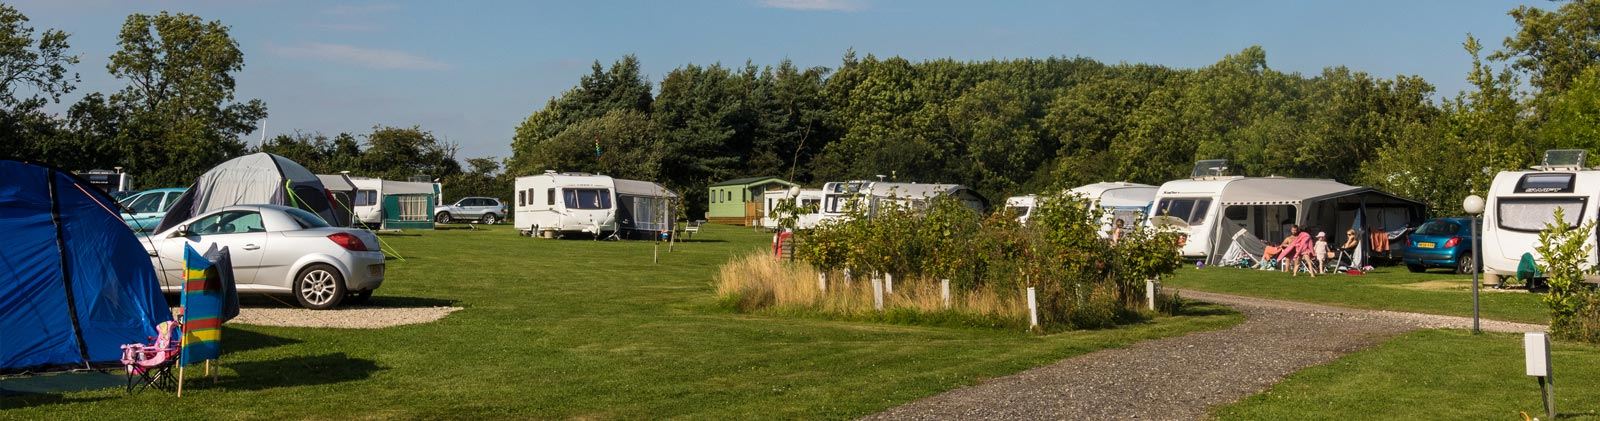 York Meadows Camping and Caravan Park pitches